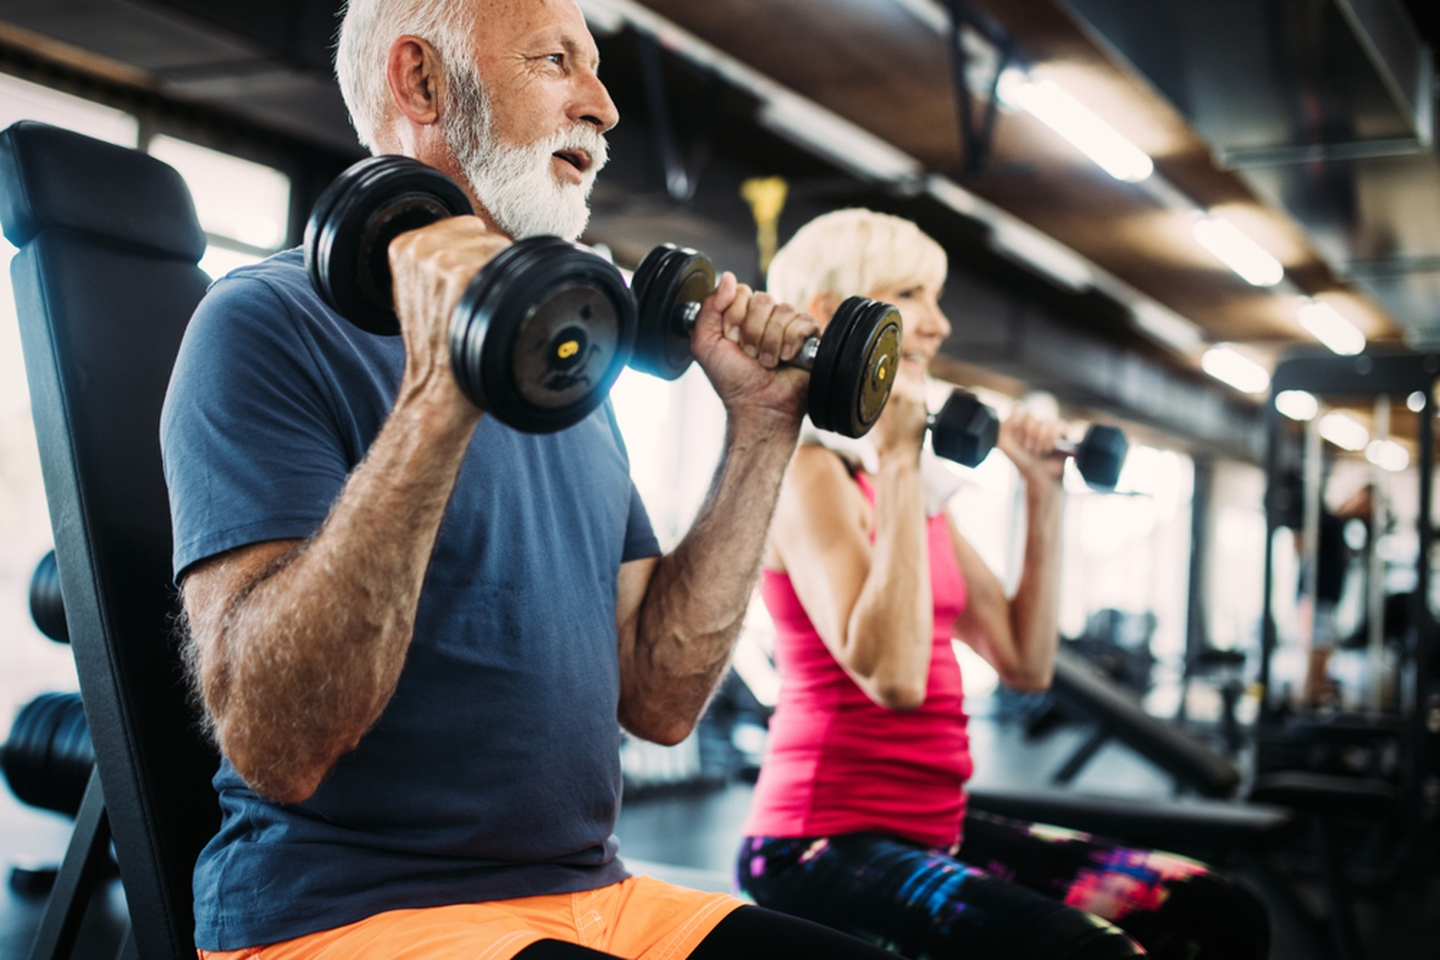 older_couple_exercising.jpg.1440x960_q100_crop-scale_upscale